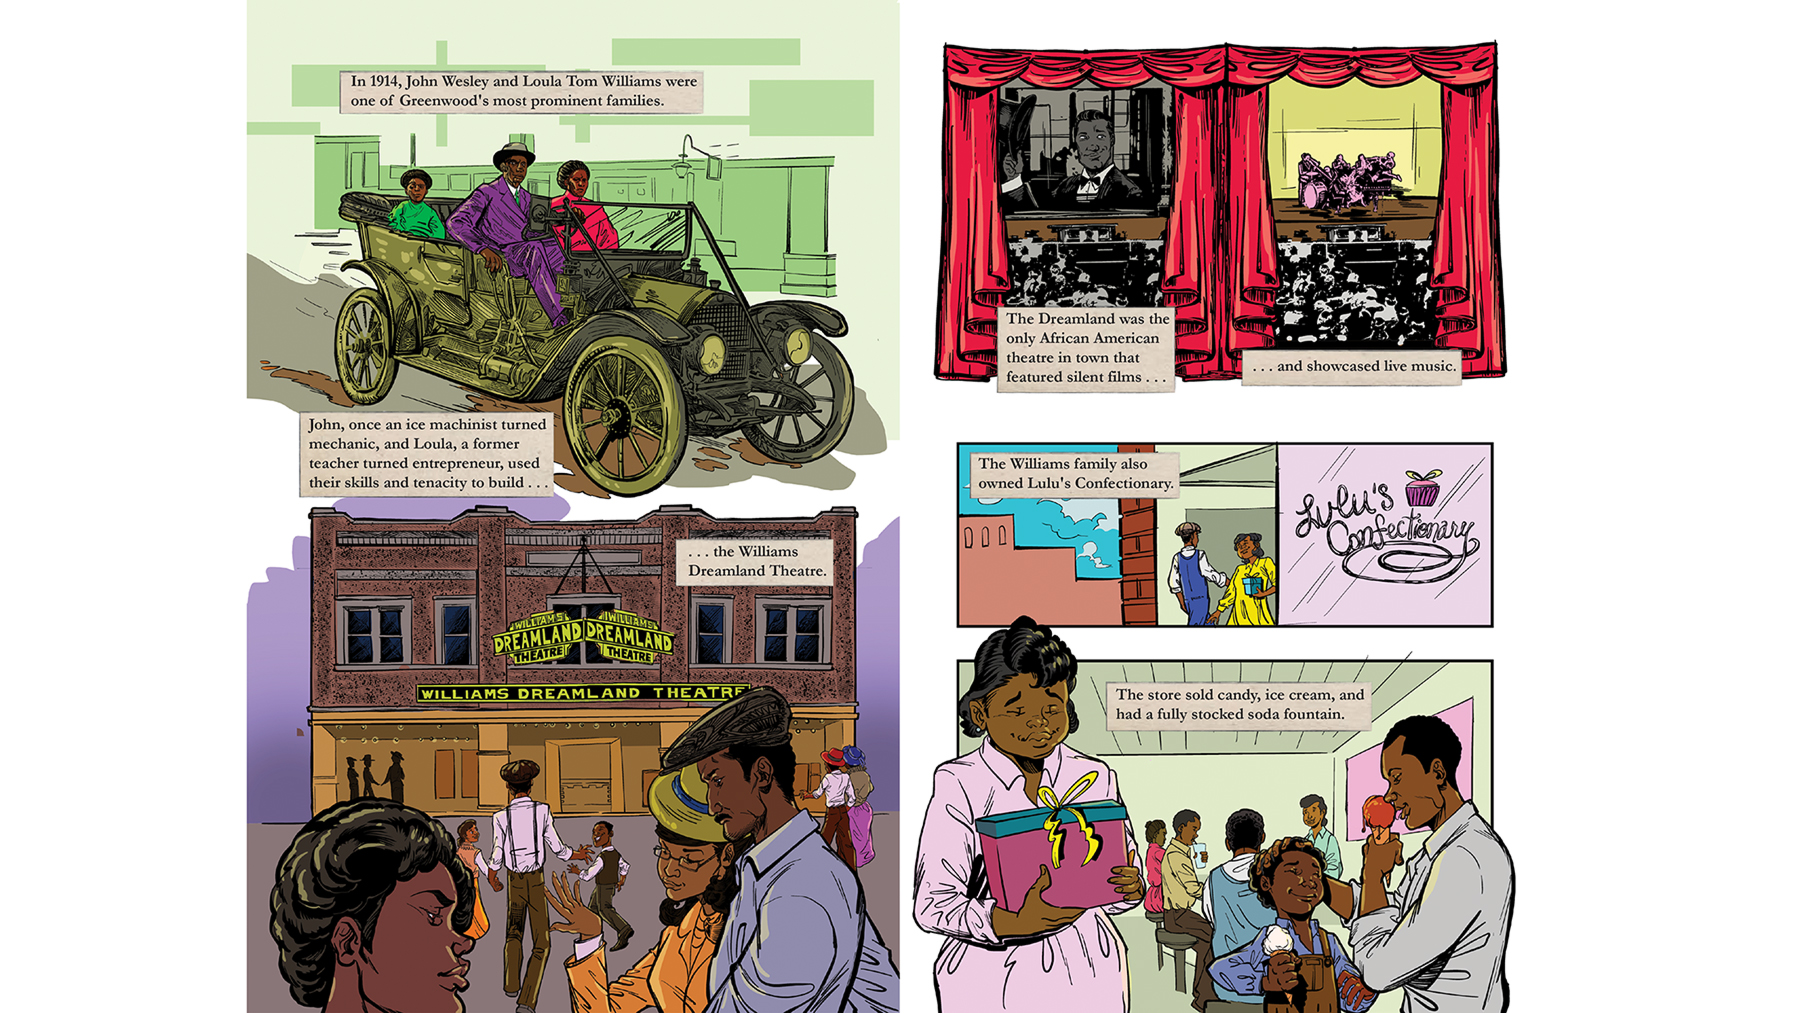 Robinson used bright colors to portray the prosperity of the Greenwood community in Tulsa, Oklahoma.